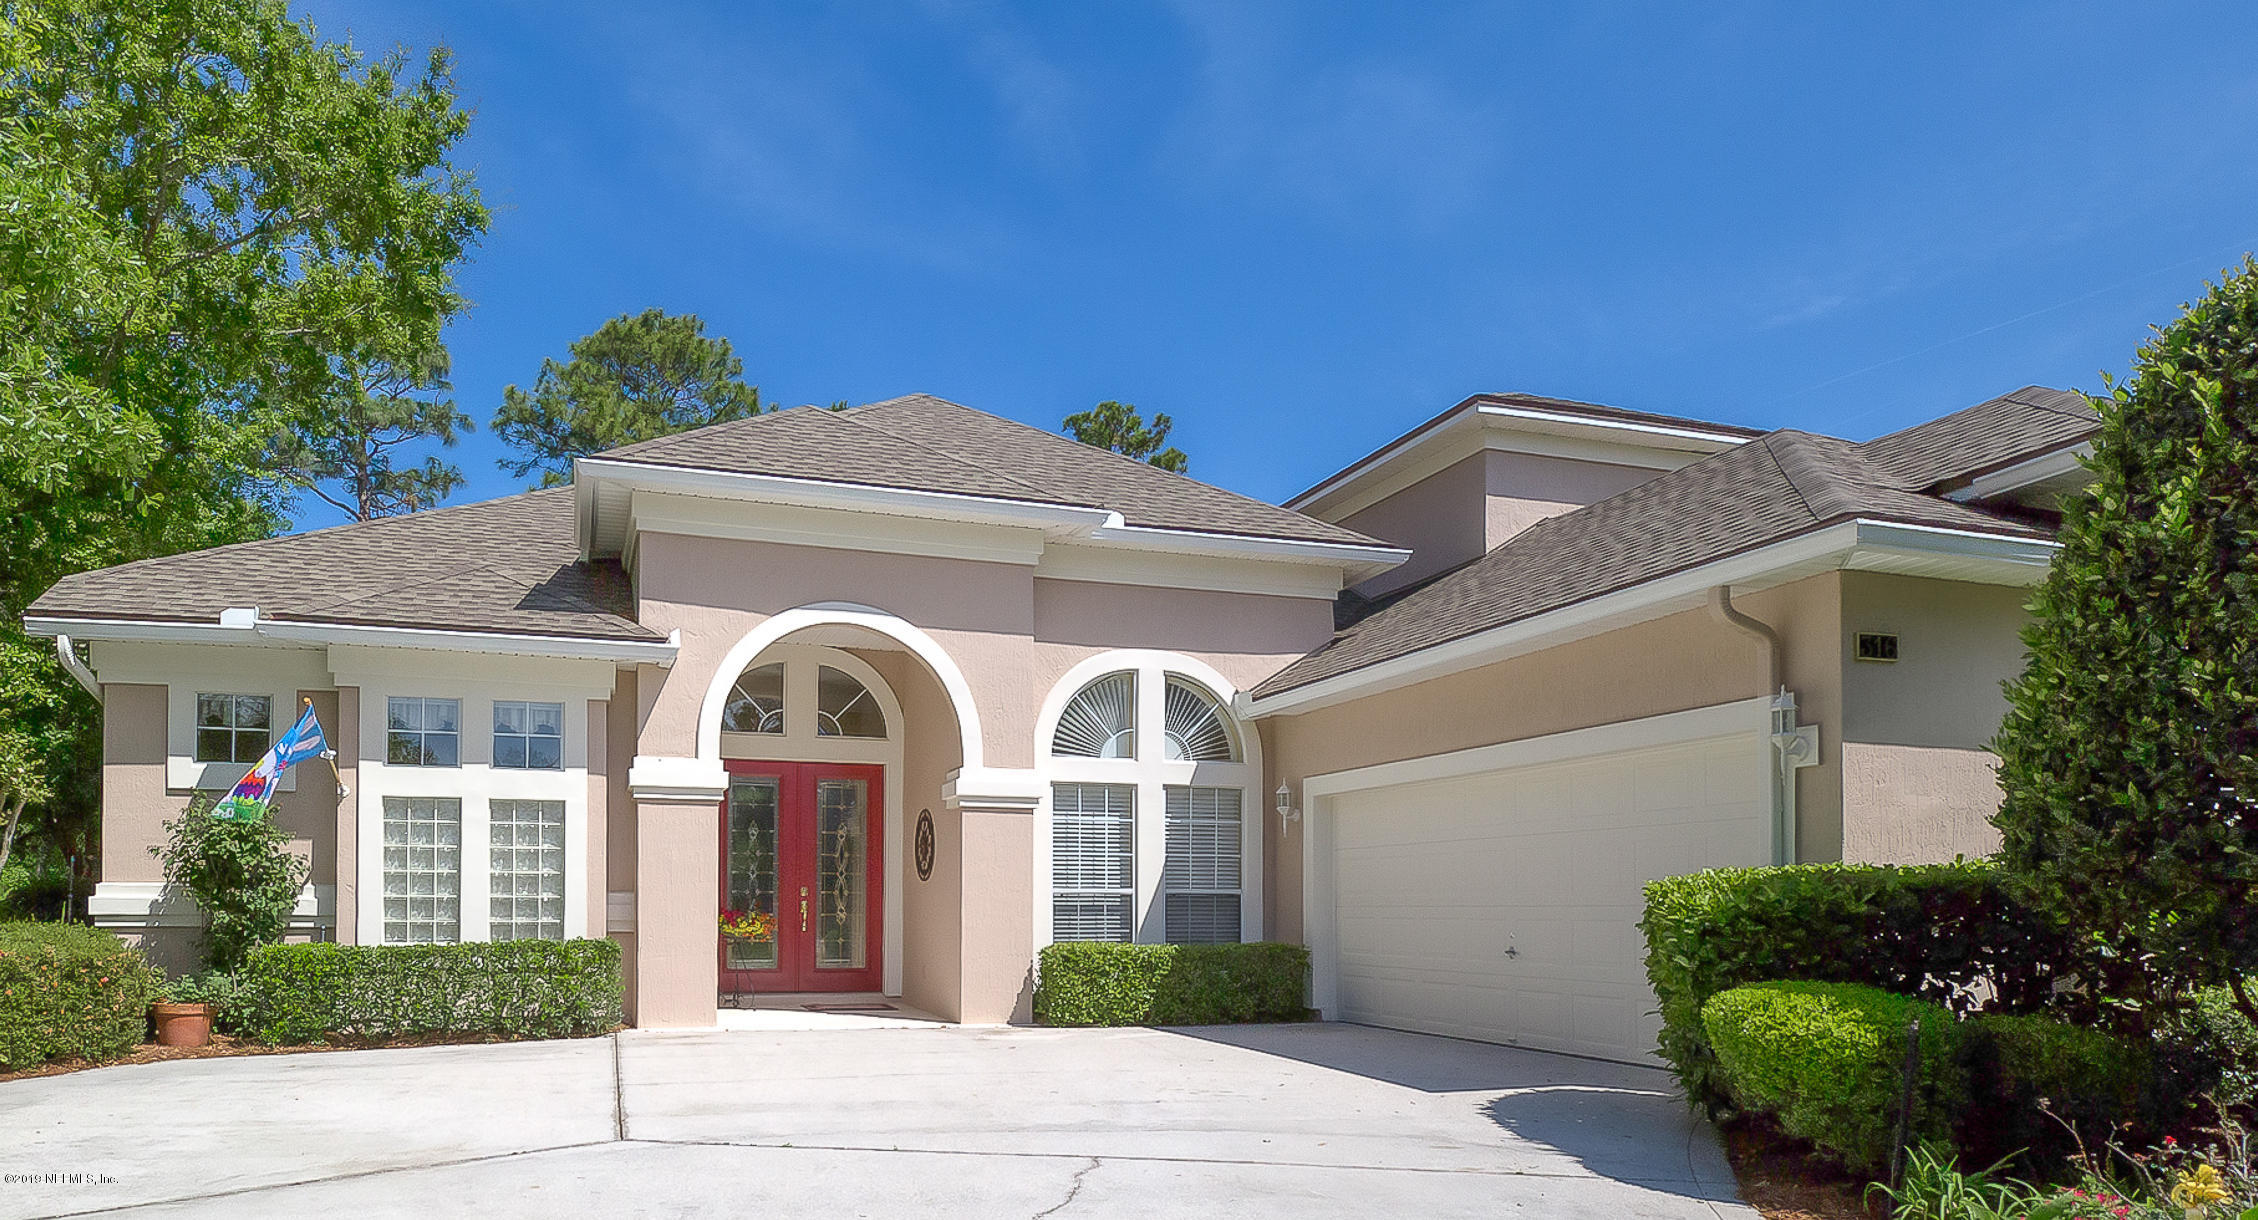 316 S CHECKERBERRY WAY, Julington Creek in ST. JOHNS County, FL 32259 Home for Sale